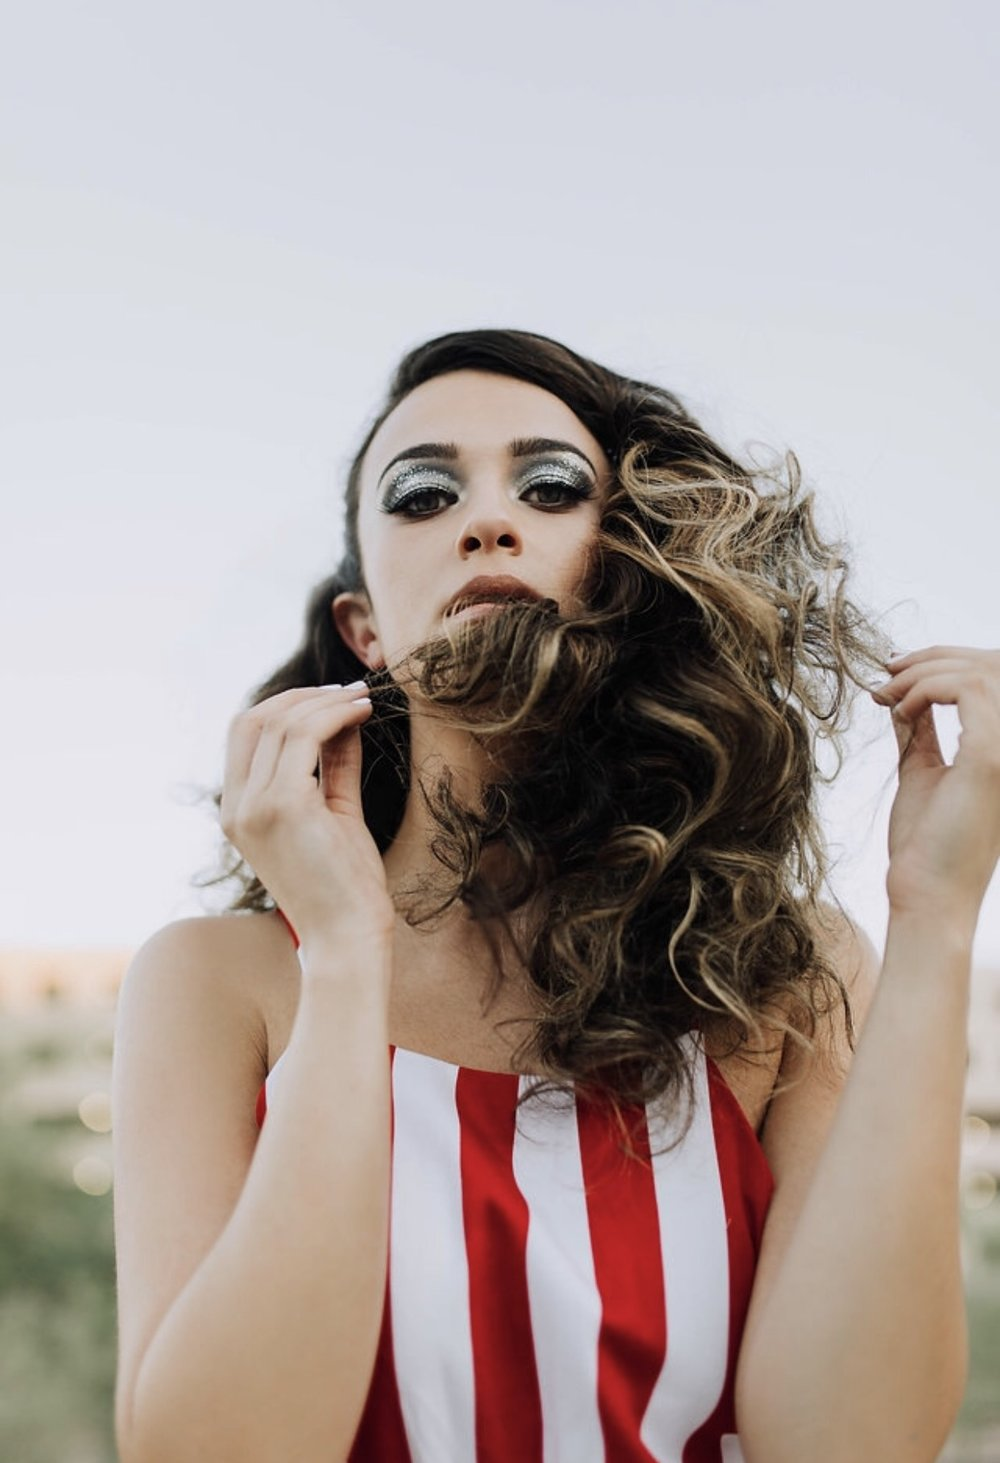 American Honey, Griffith Imaging, Fordrba, Melody Sanchez, Design De Amore, Cianna Dillow, Makeup Butterfly, Linda Wagner